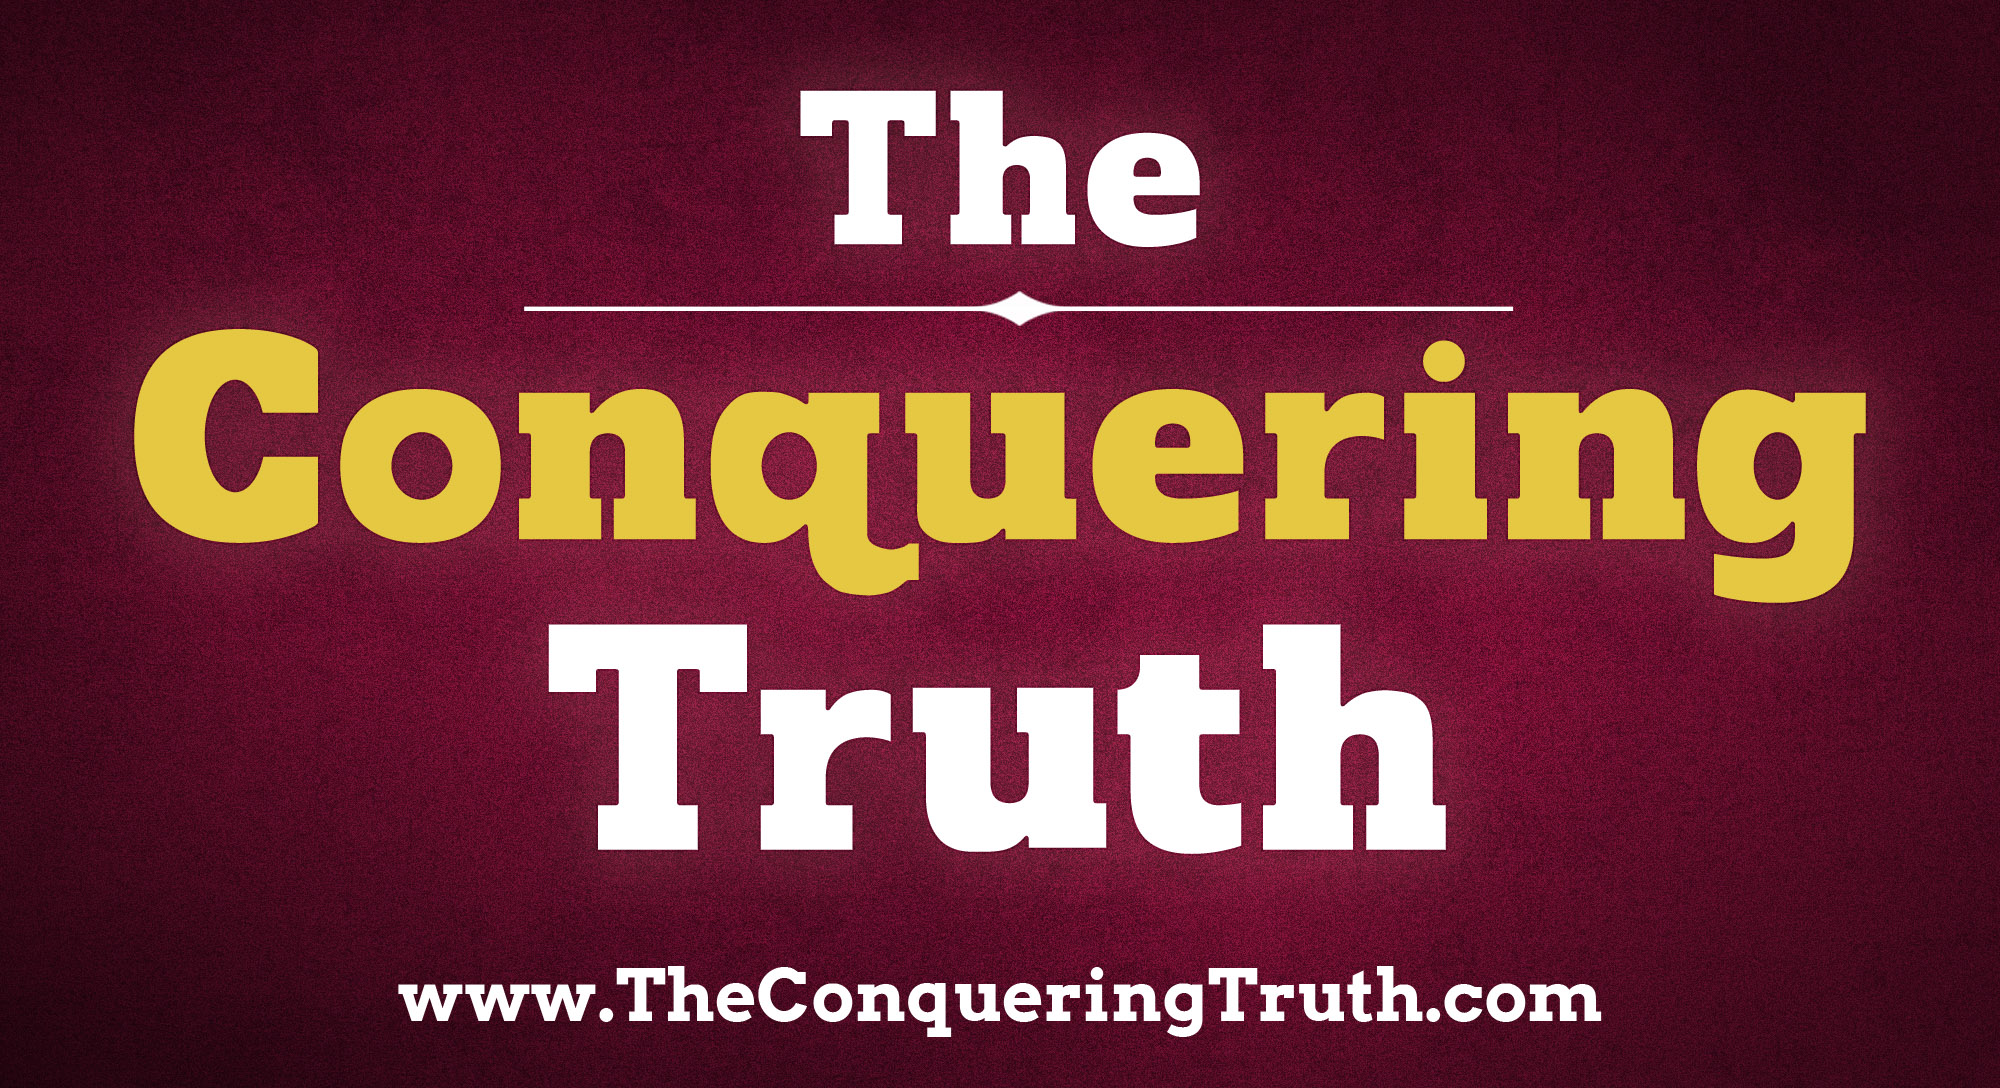 The Conquering Truth